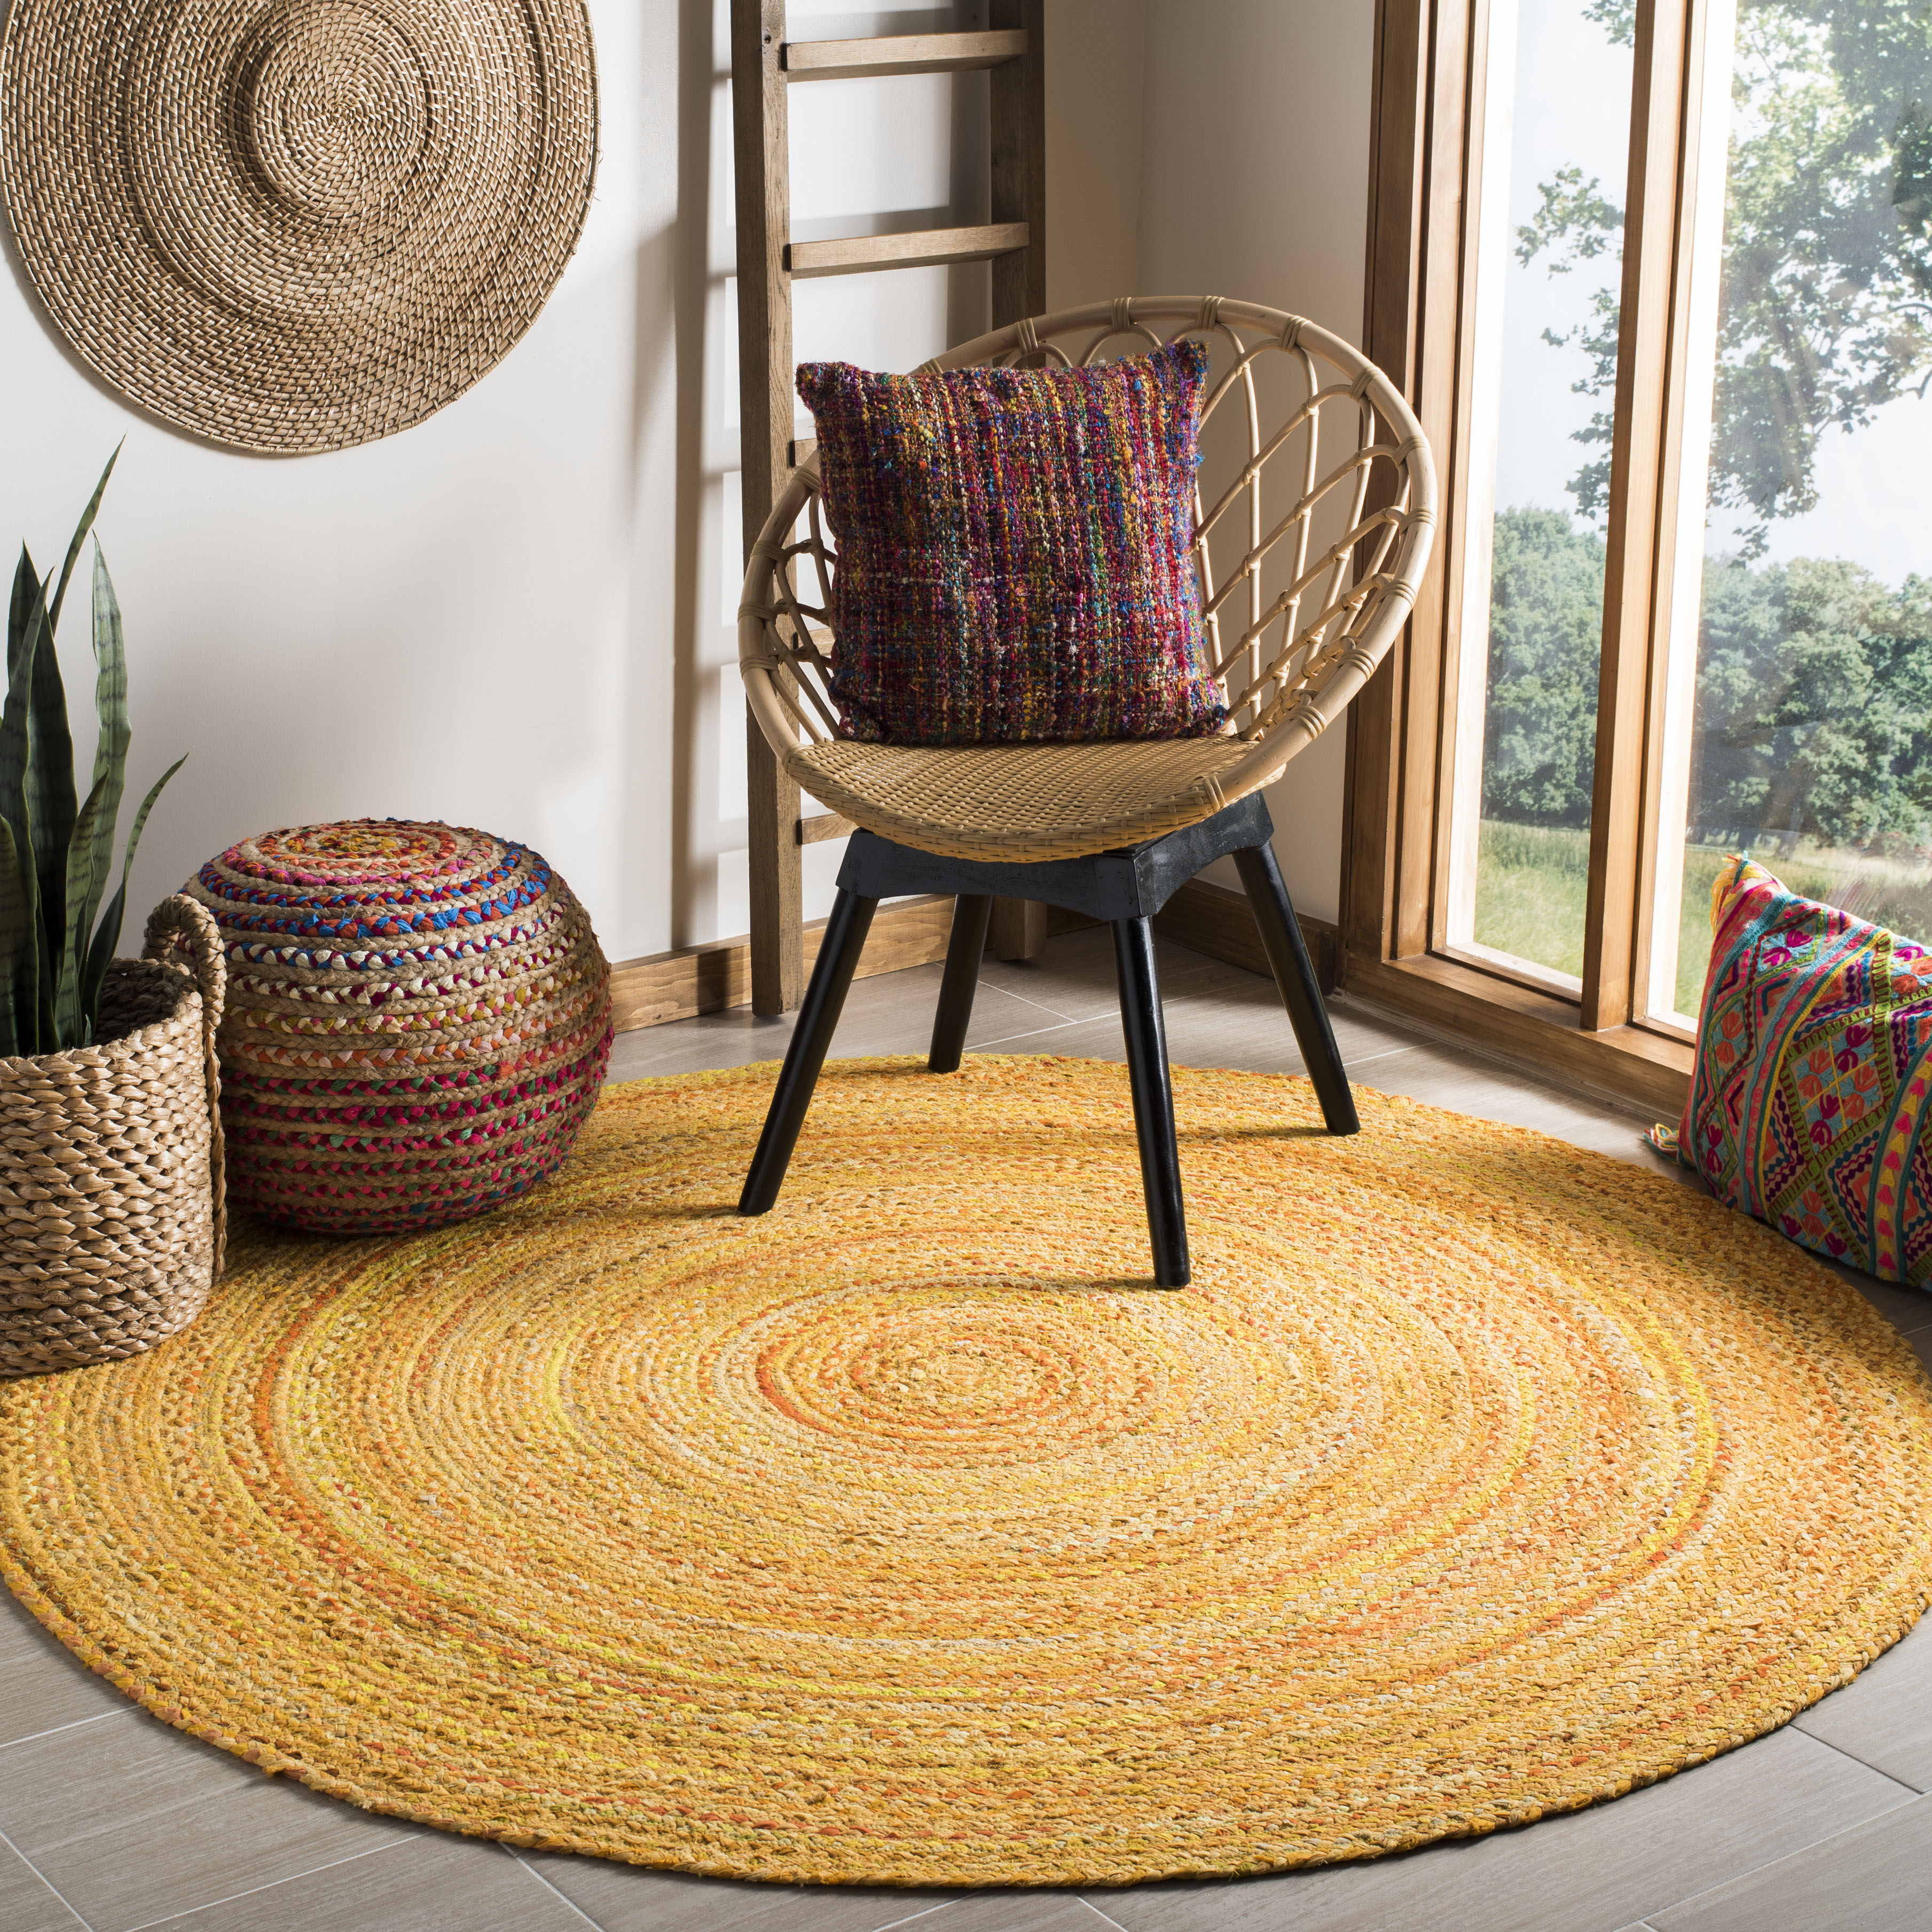 Safavieh Braided Winifred Colorful Braided Area Rug